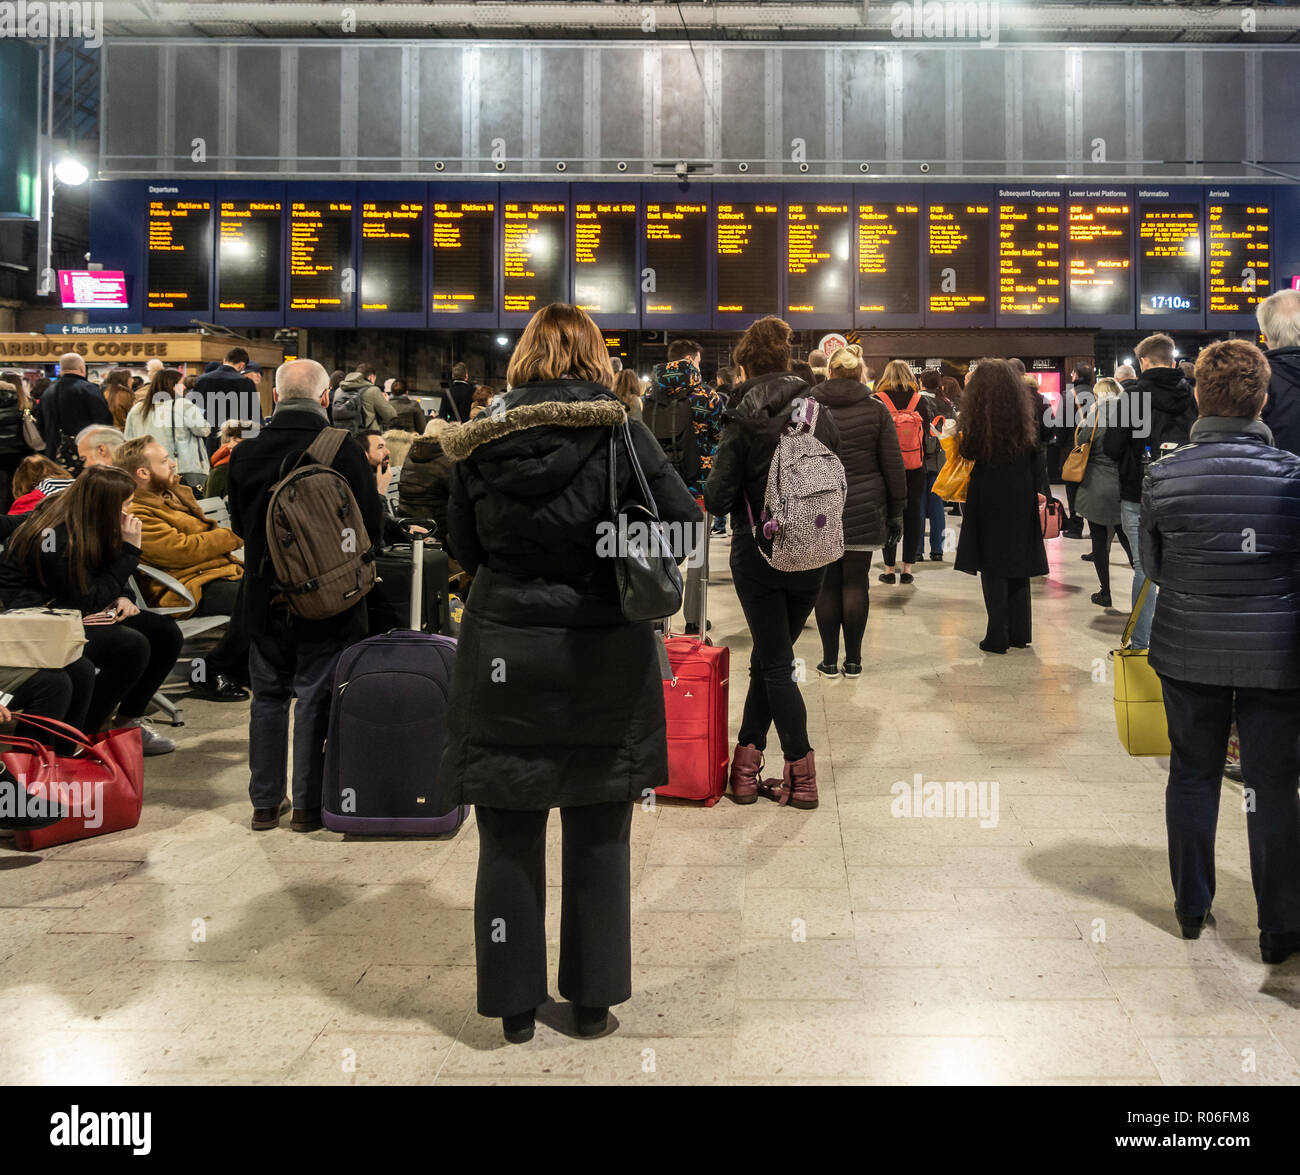 Passengers, men and women, waiting for trains and looking at the departures board on the concourse of Glasgow Central Station, Scotland, UK - Stock Image